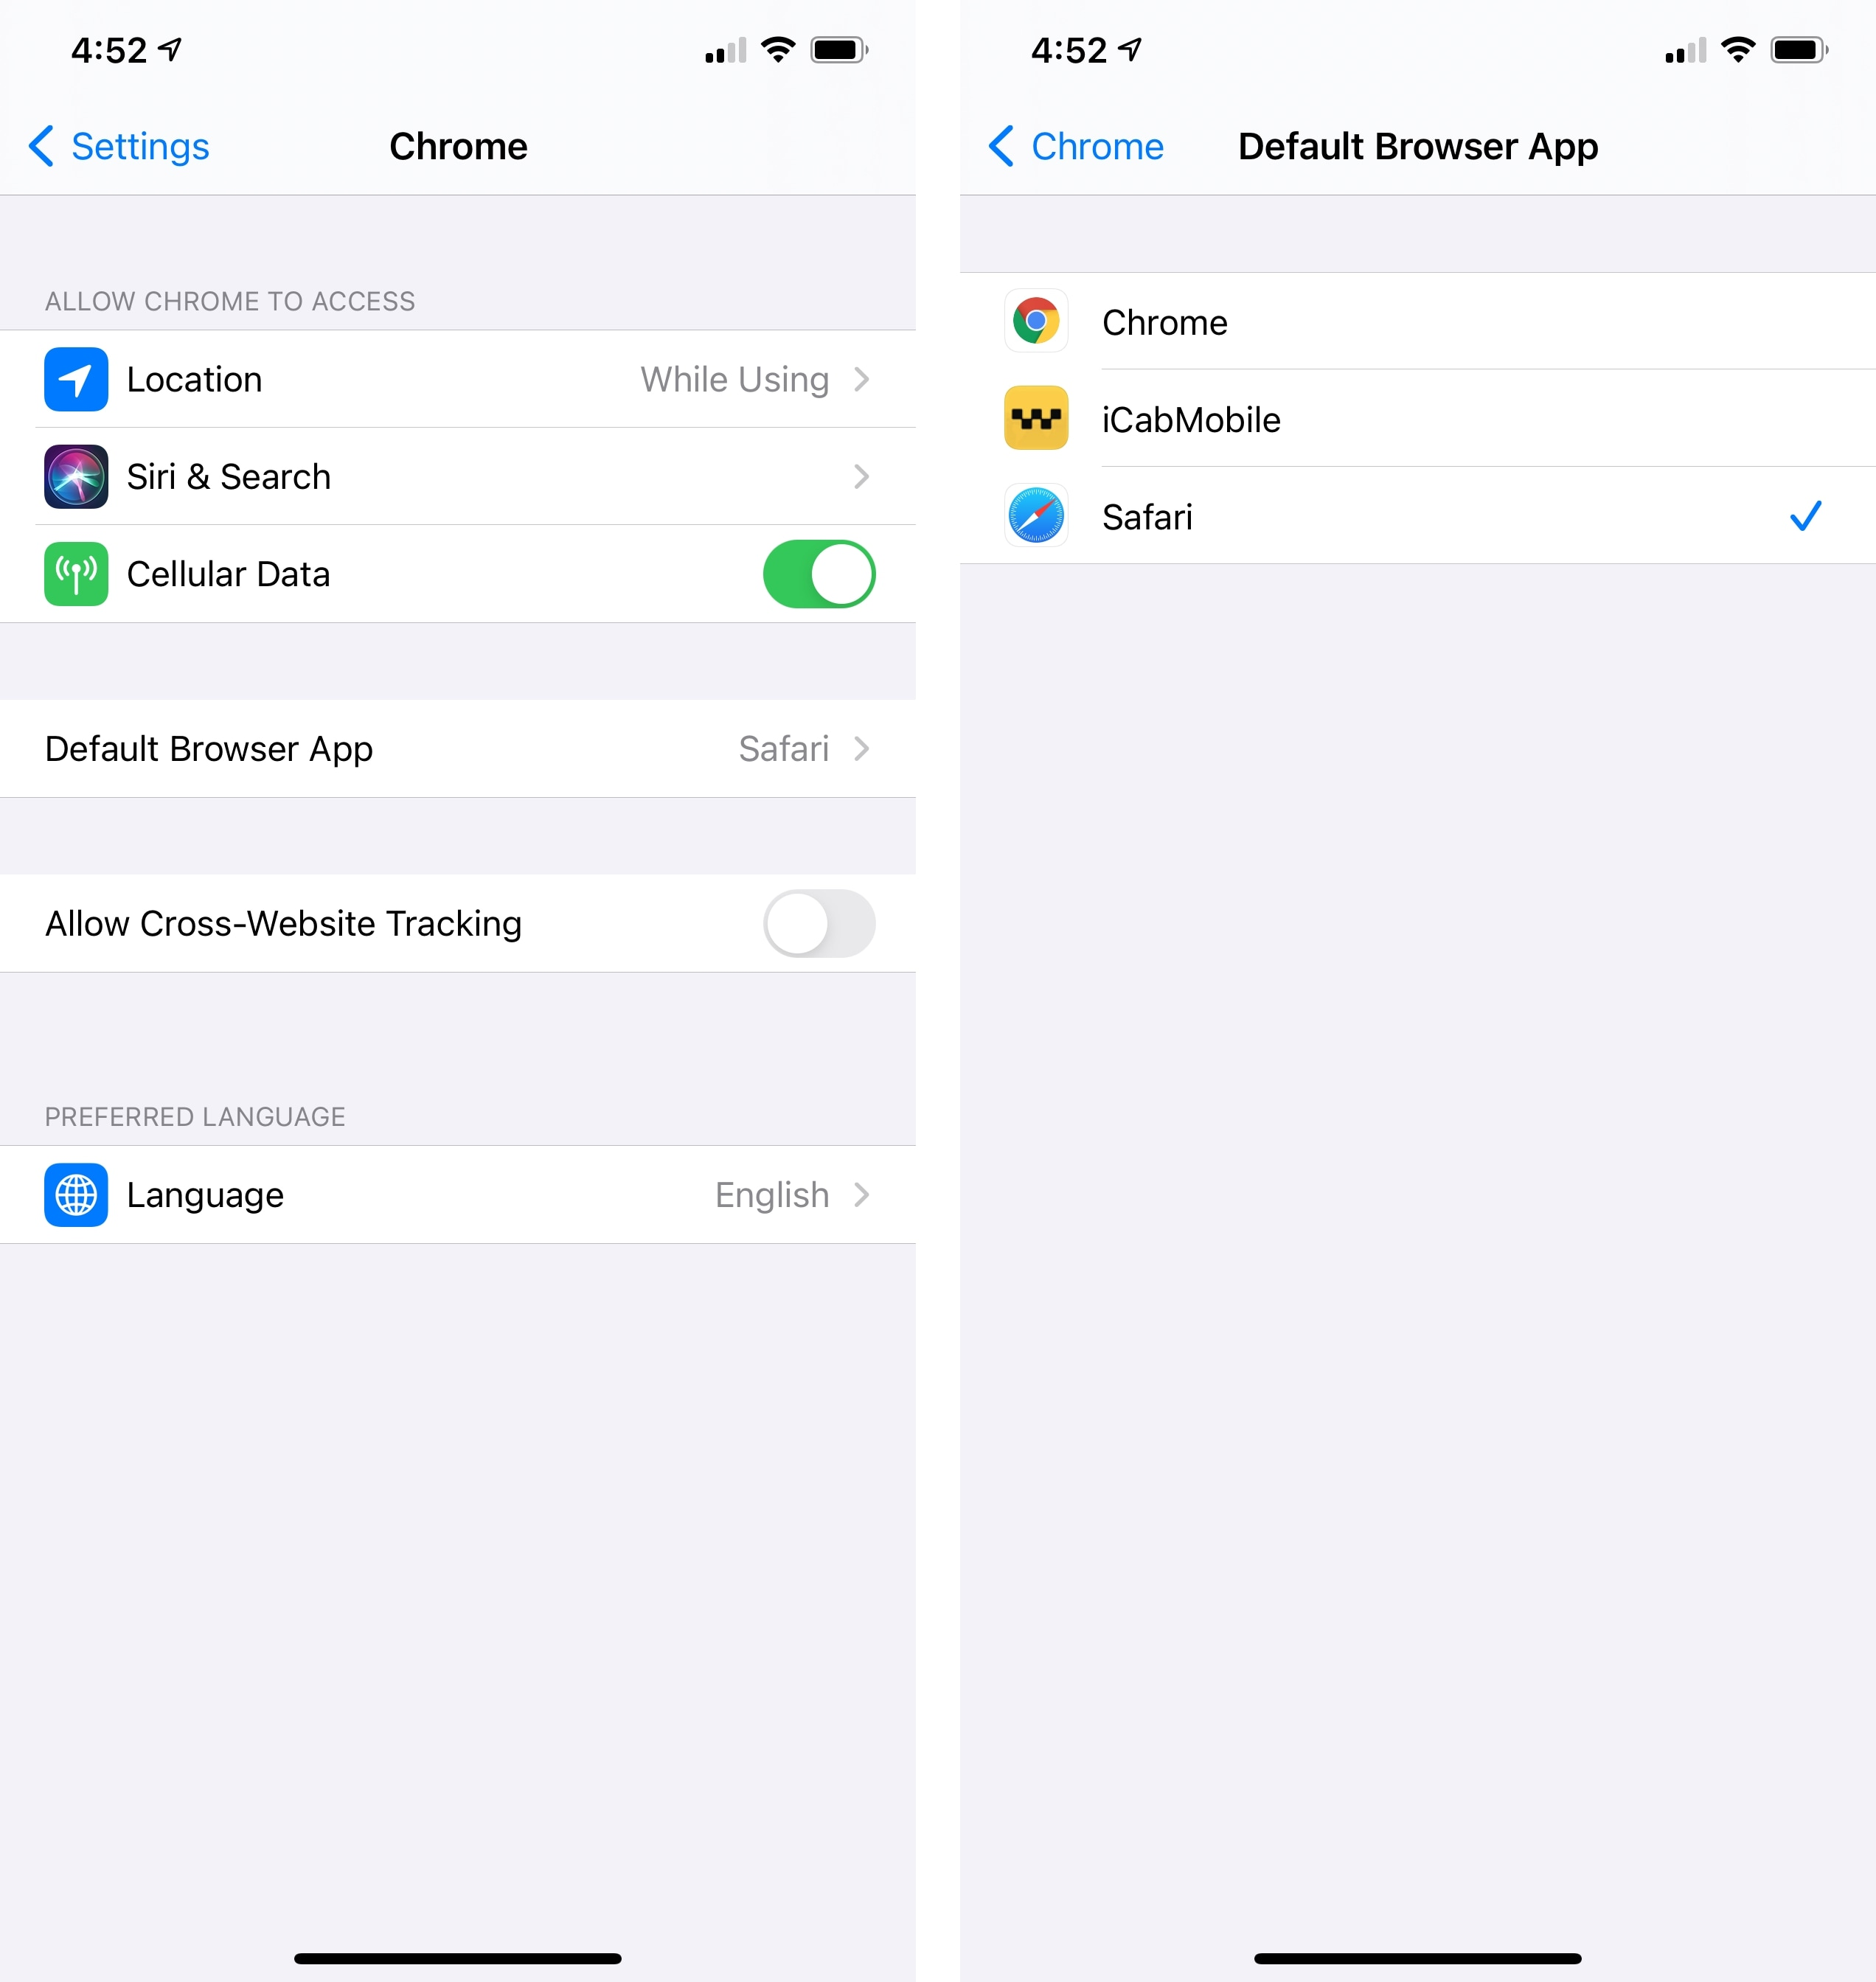 How to set a third-party default browser in iOS 14.